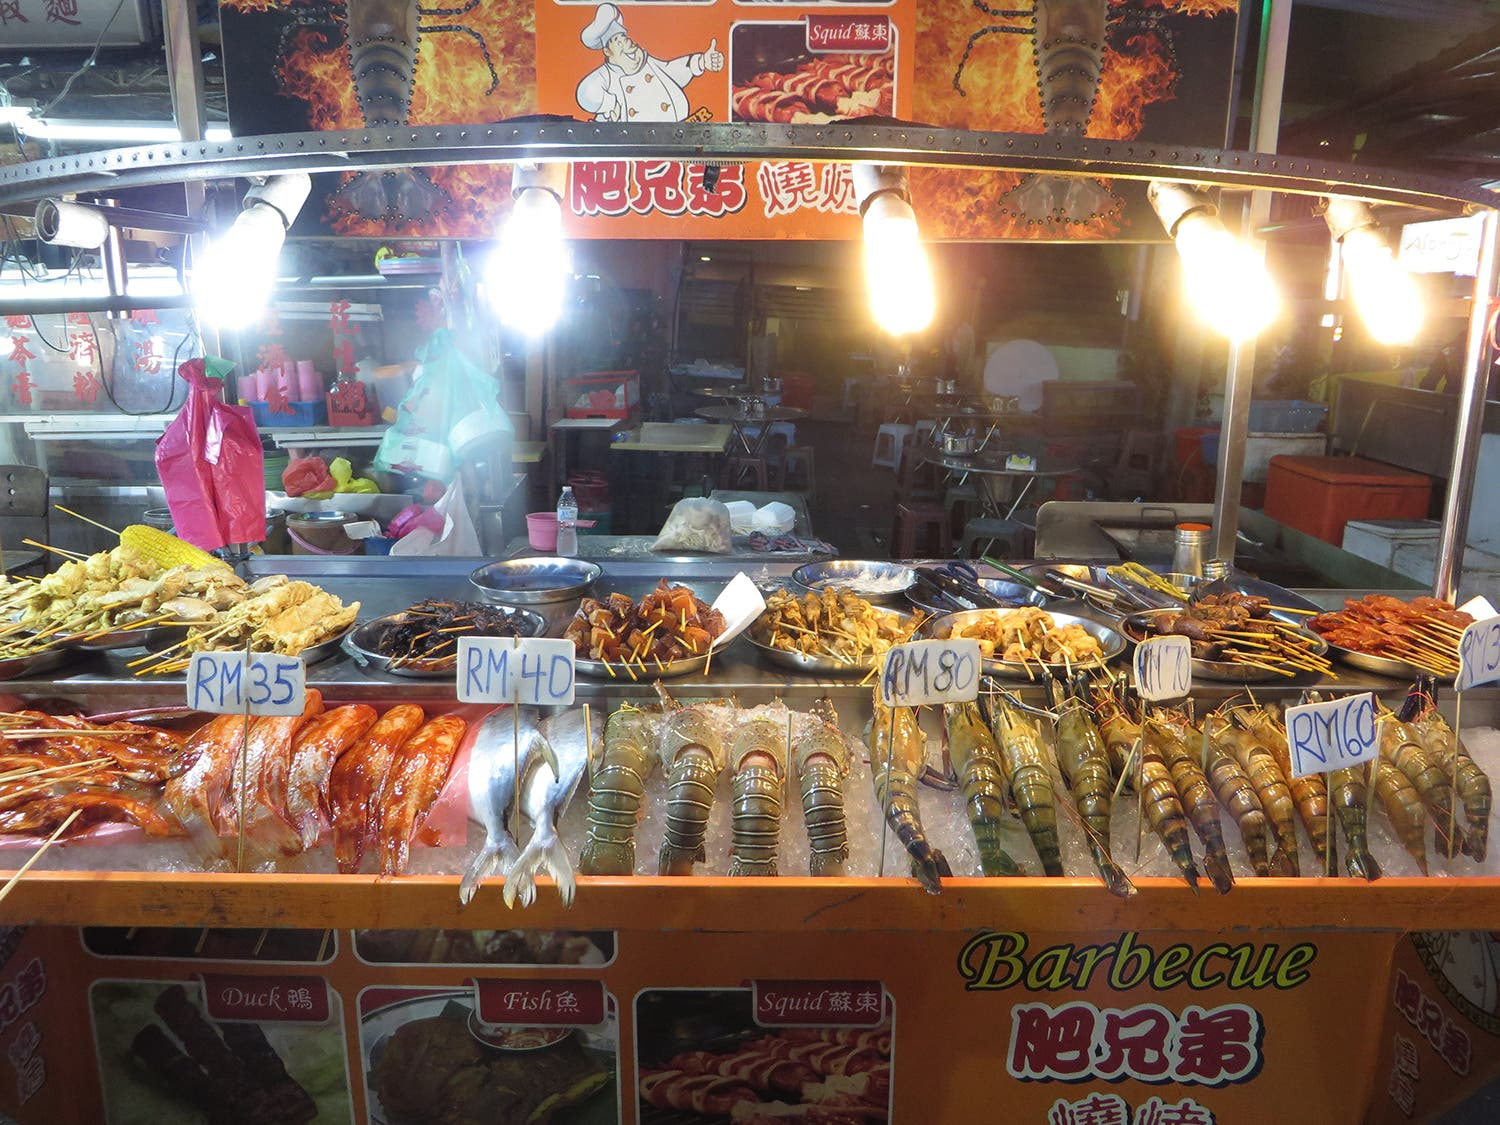 Seafood on display, ready for customers to order and eat in the street (Photo: Peter Harrison)